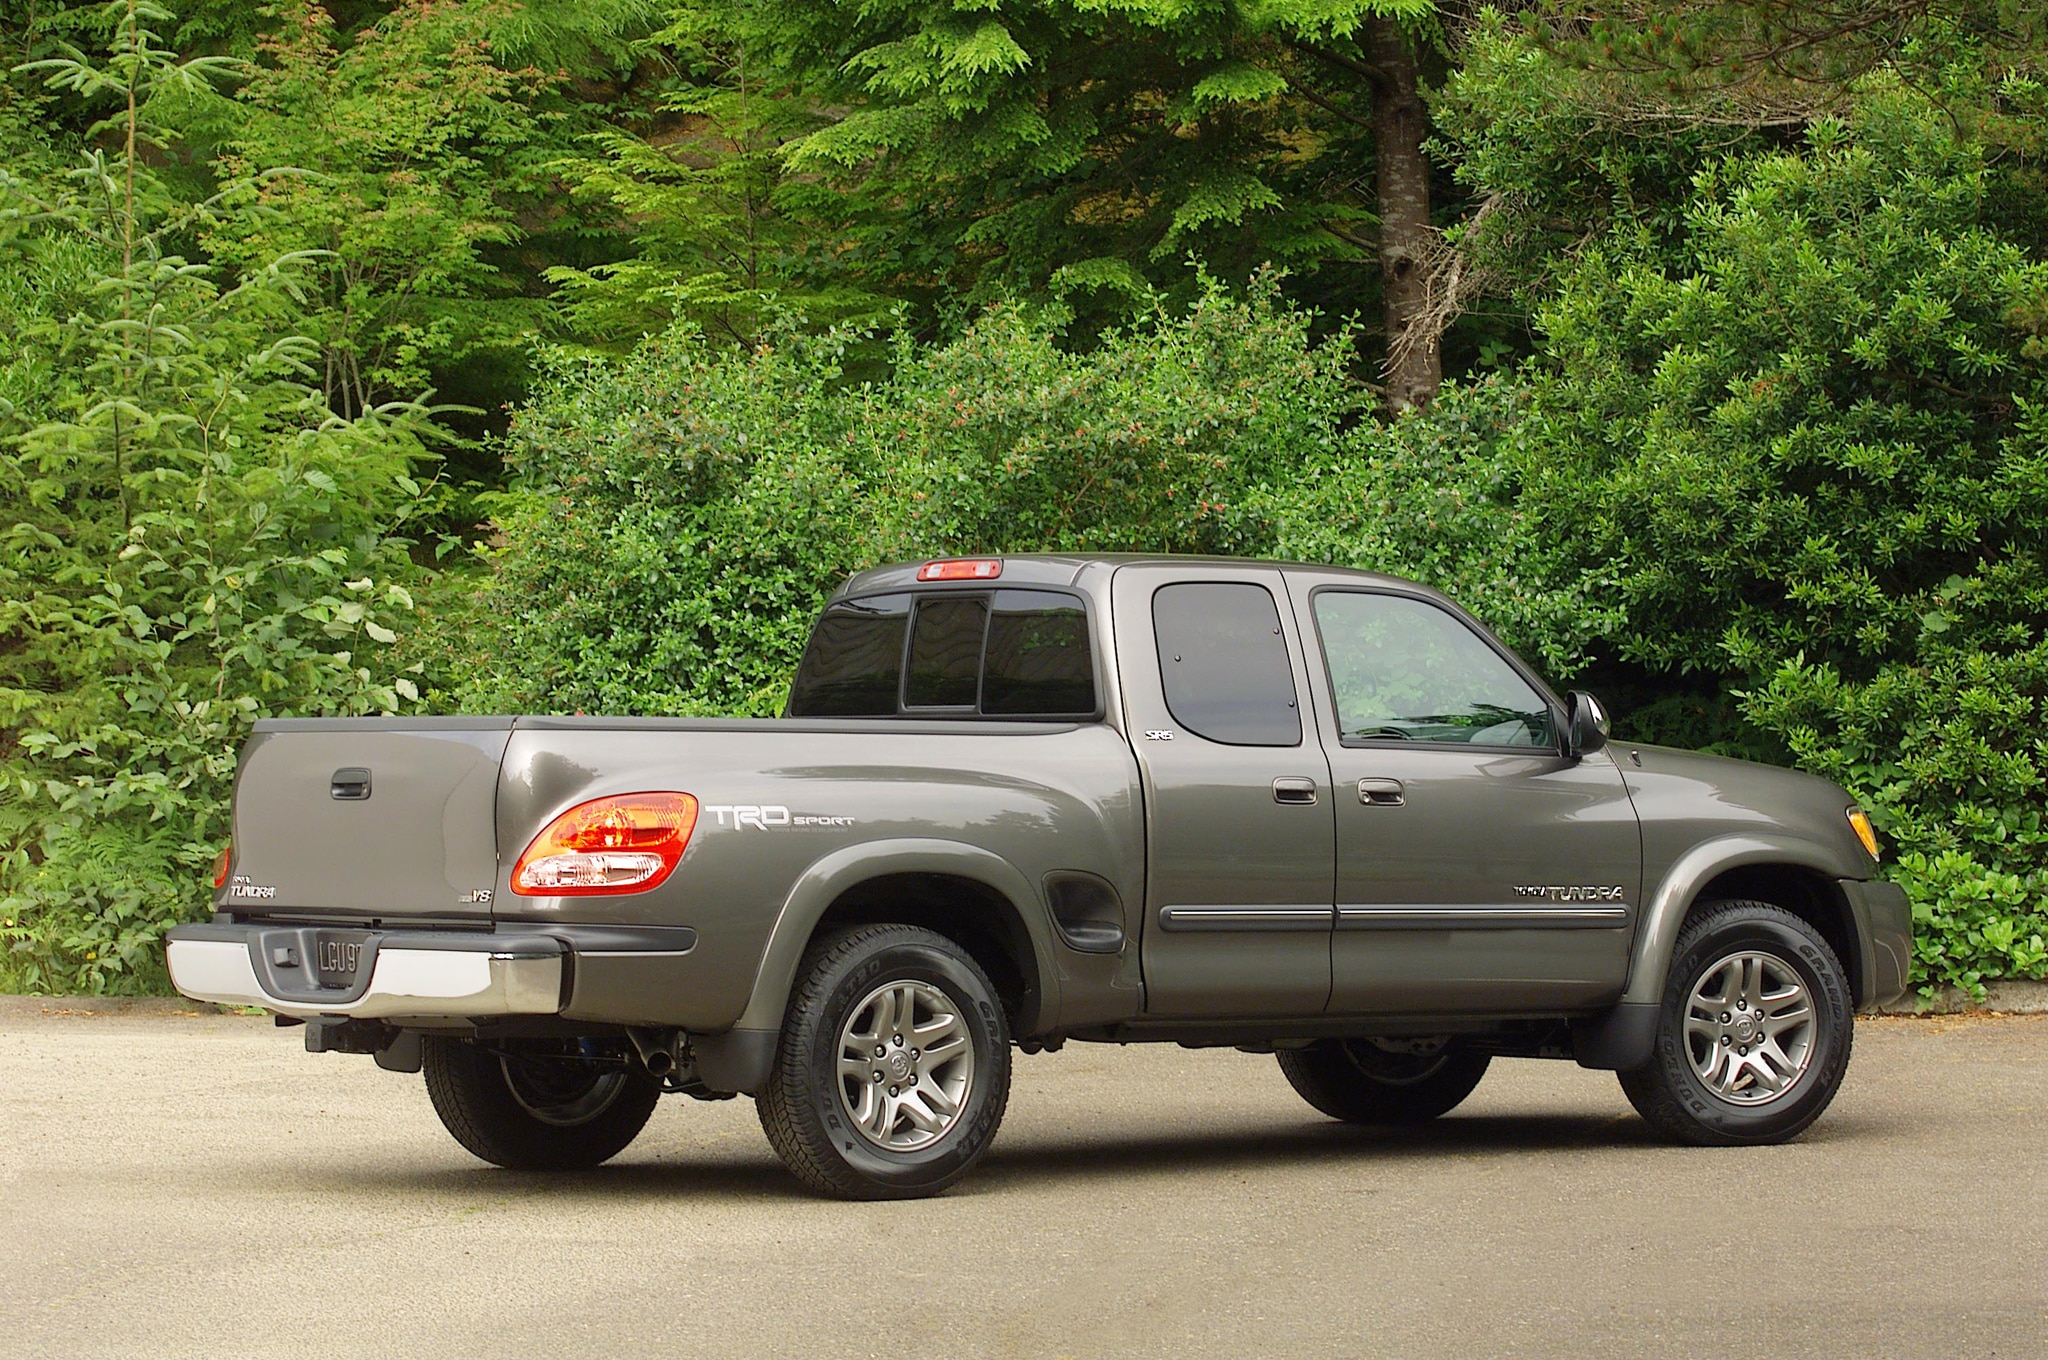 2018 Toyota Tundra Double Cab >> 2005 Toyota Tundra - Review - IntelliChoice